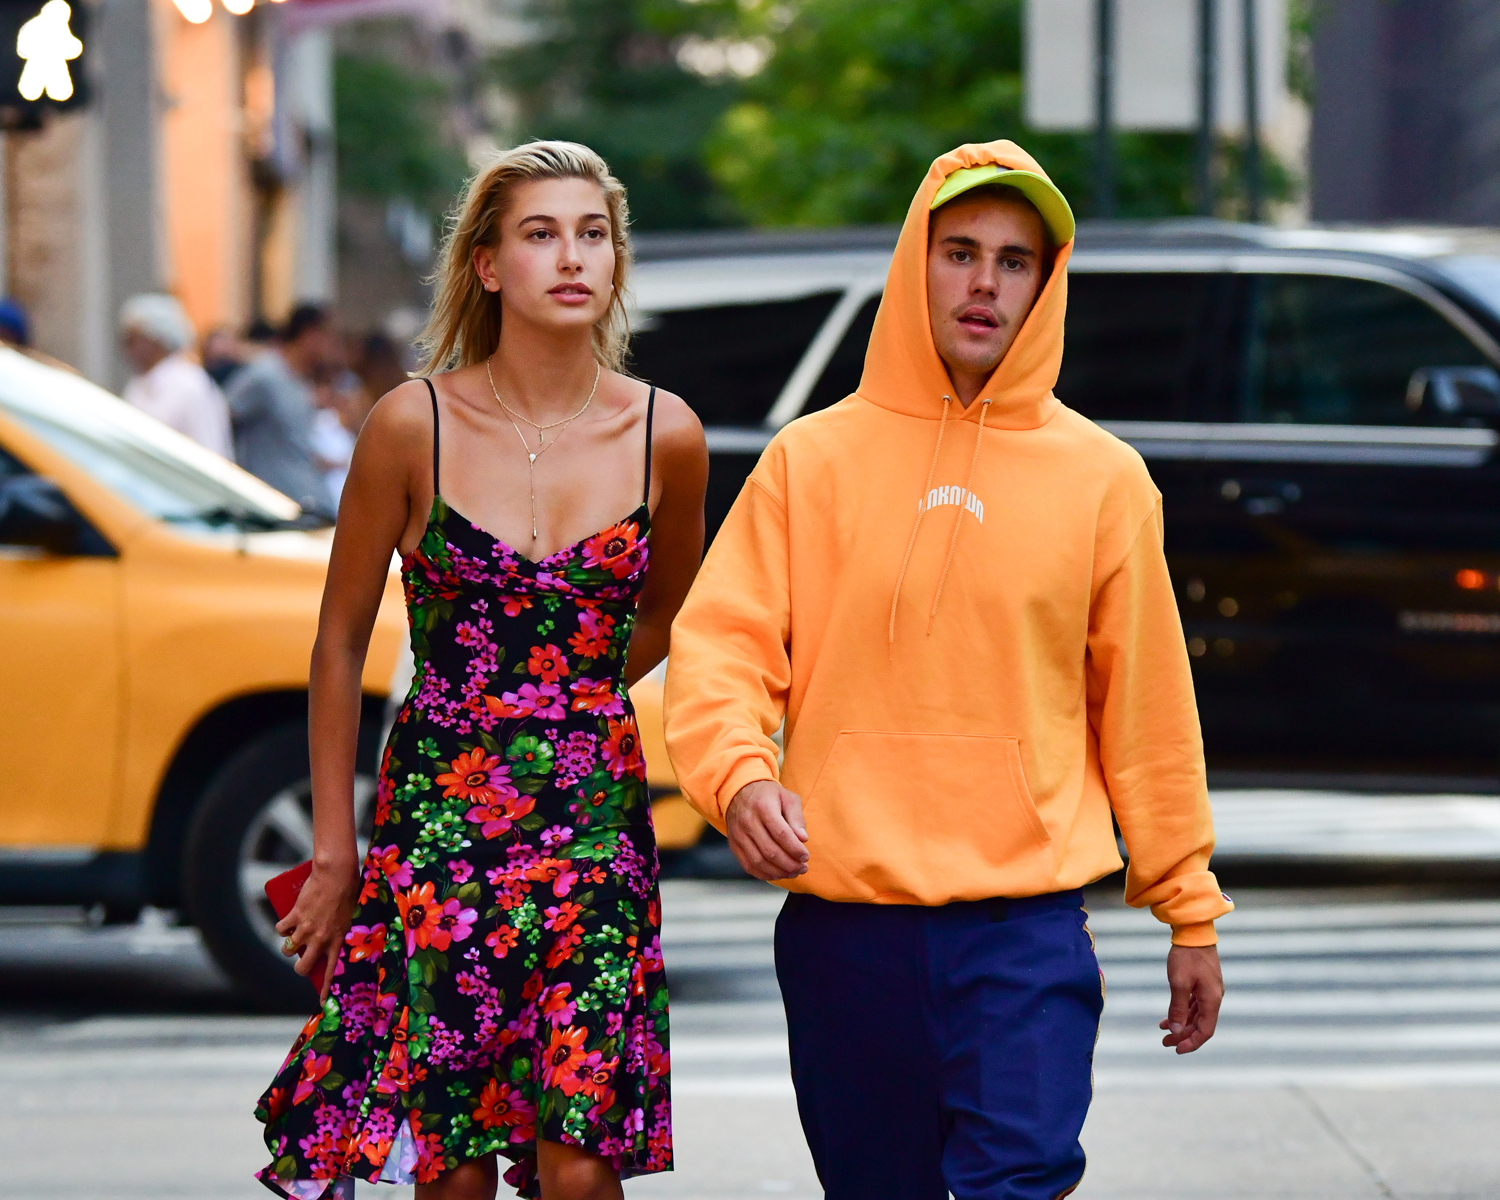 So Sweet! Watch Hailey Bieber reveal how Justin Bieber Proposed